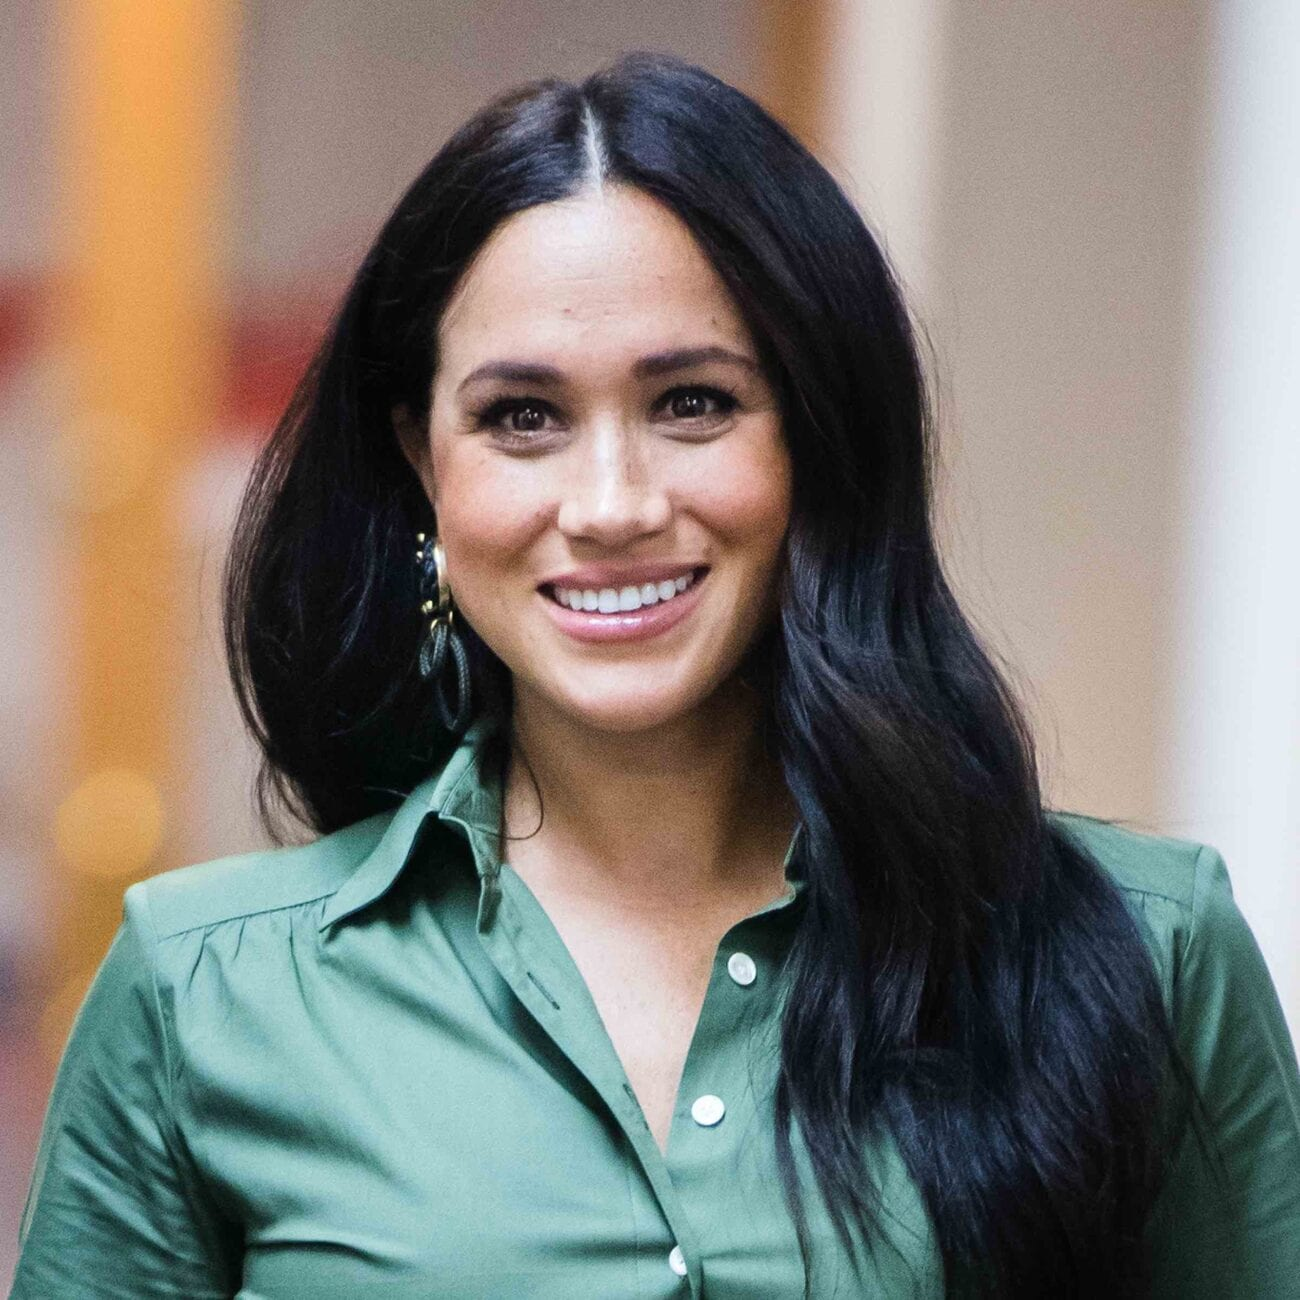 Meghan Markle made news for her brave stance on issues when she was an actor. Will being a royal keep her silent?